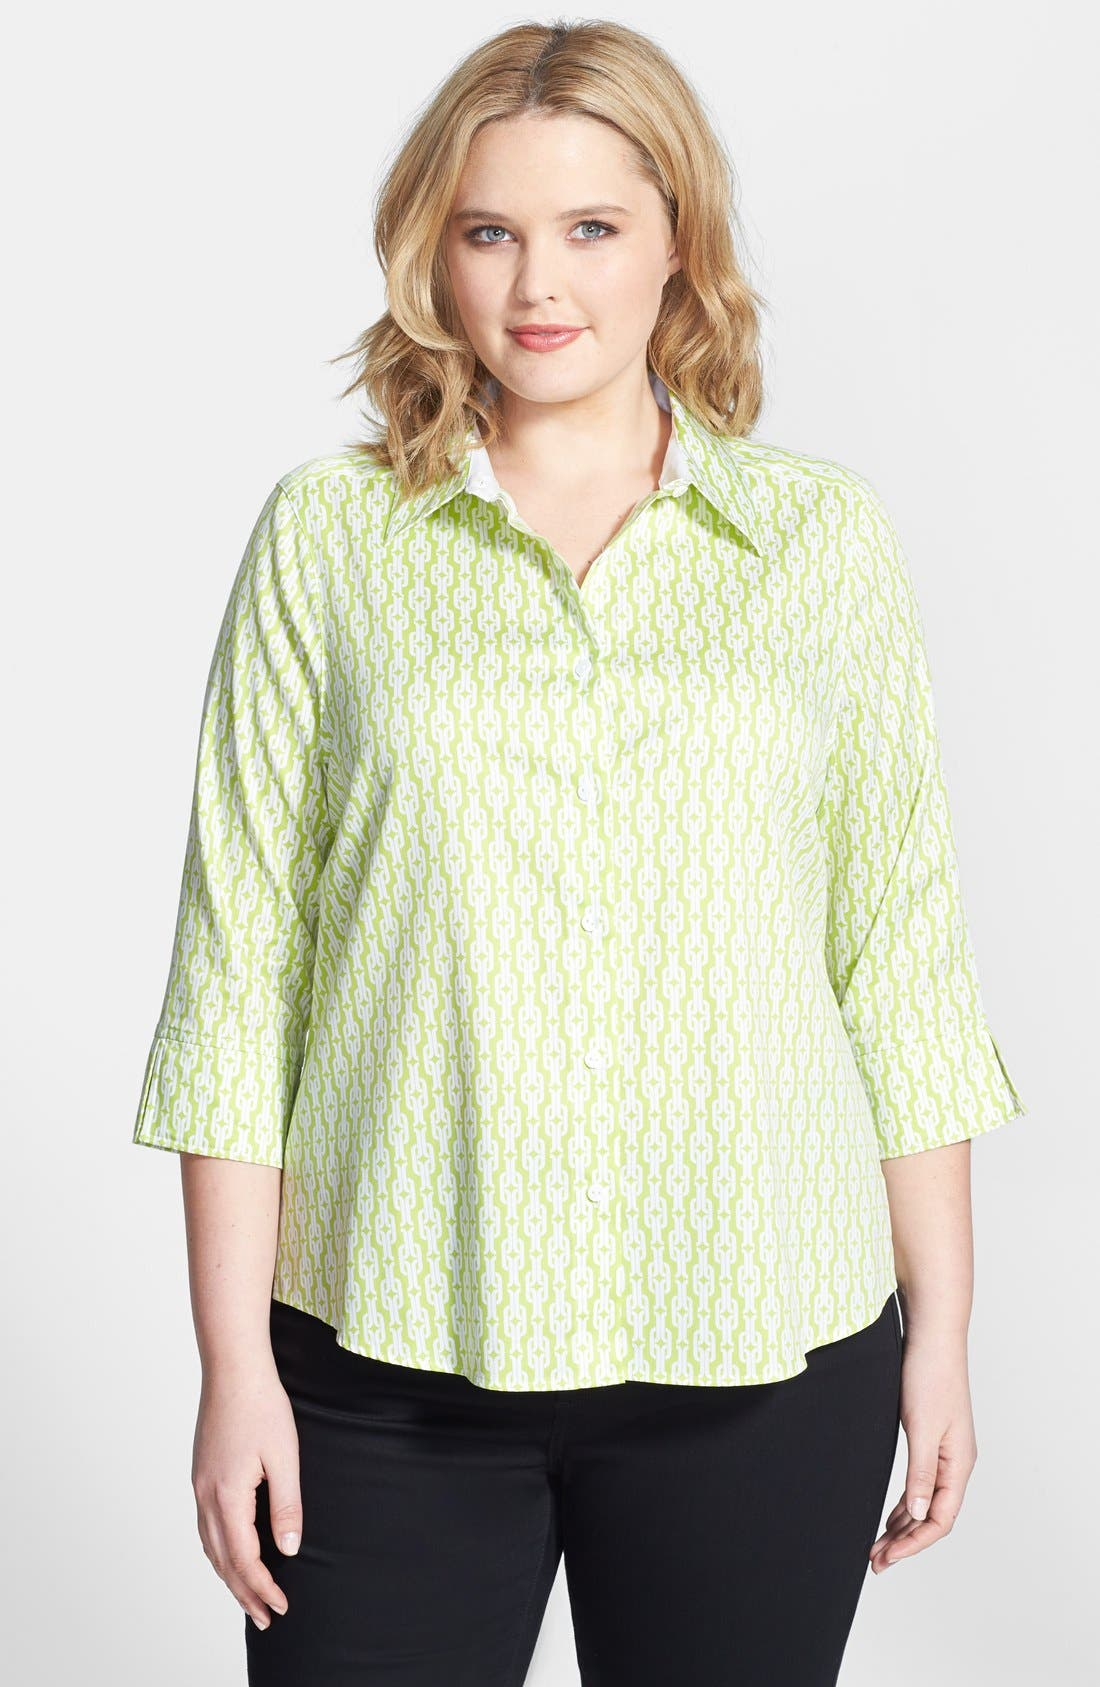 Main Image - Foxcroft Chain Link Print Shaped Non-Iron Cotton Shirt (Plus Size)